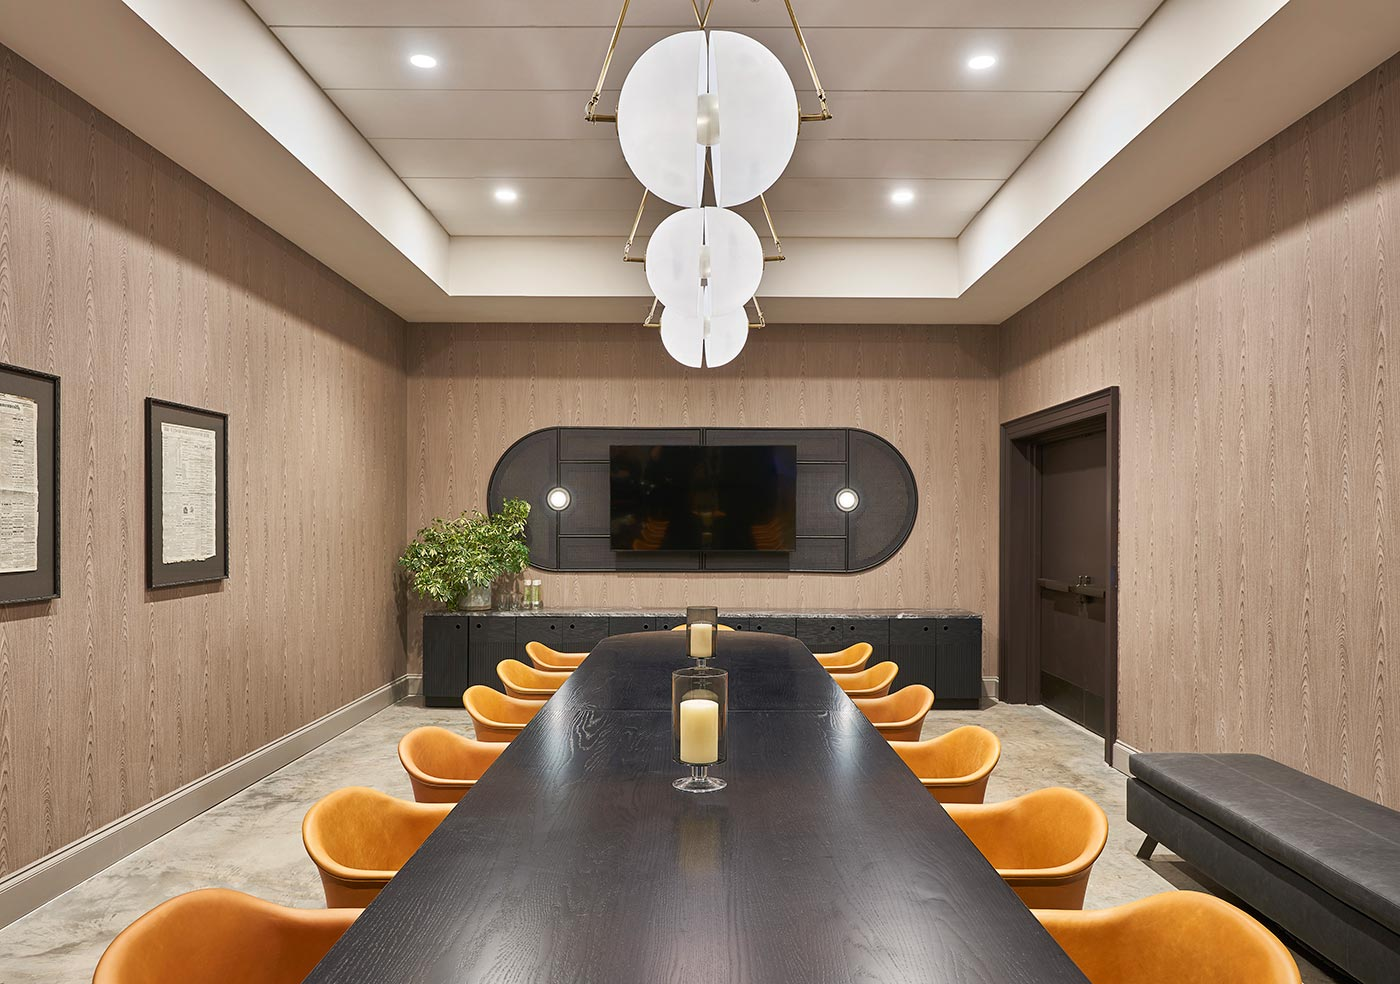 long meeting table with chairs and ceiling lights